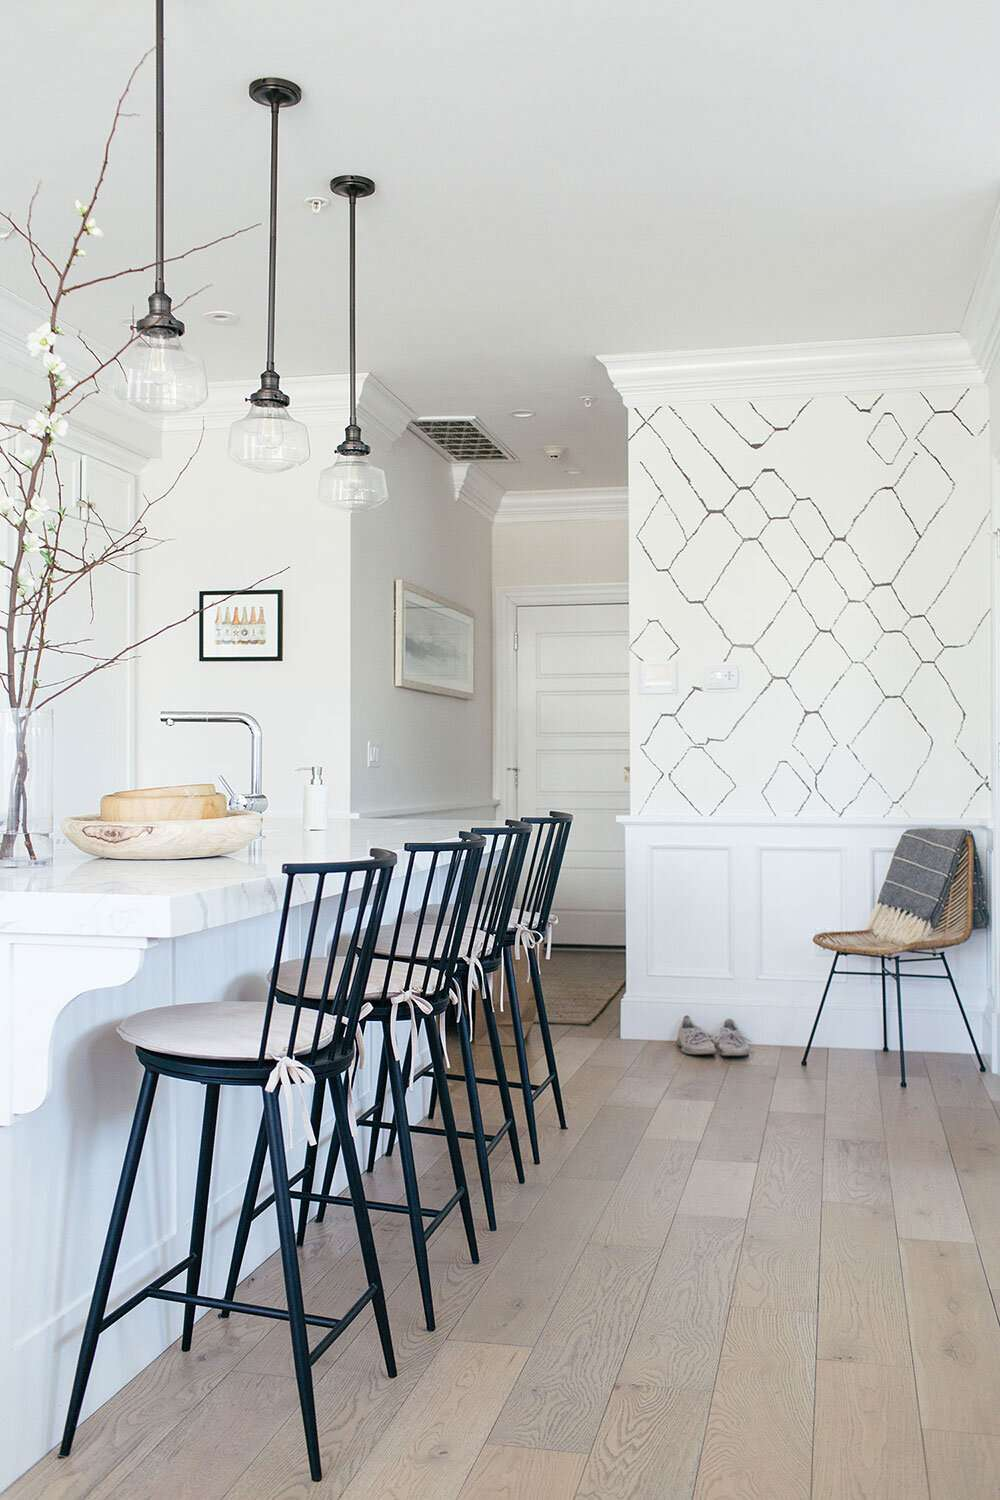 White kitchen with black chairs